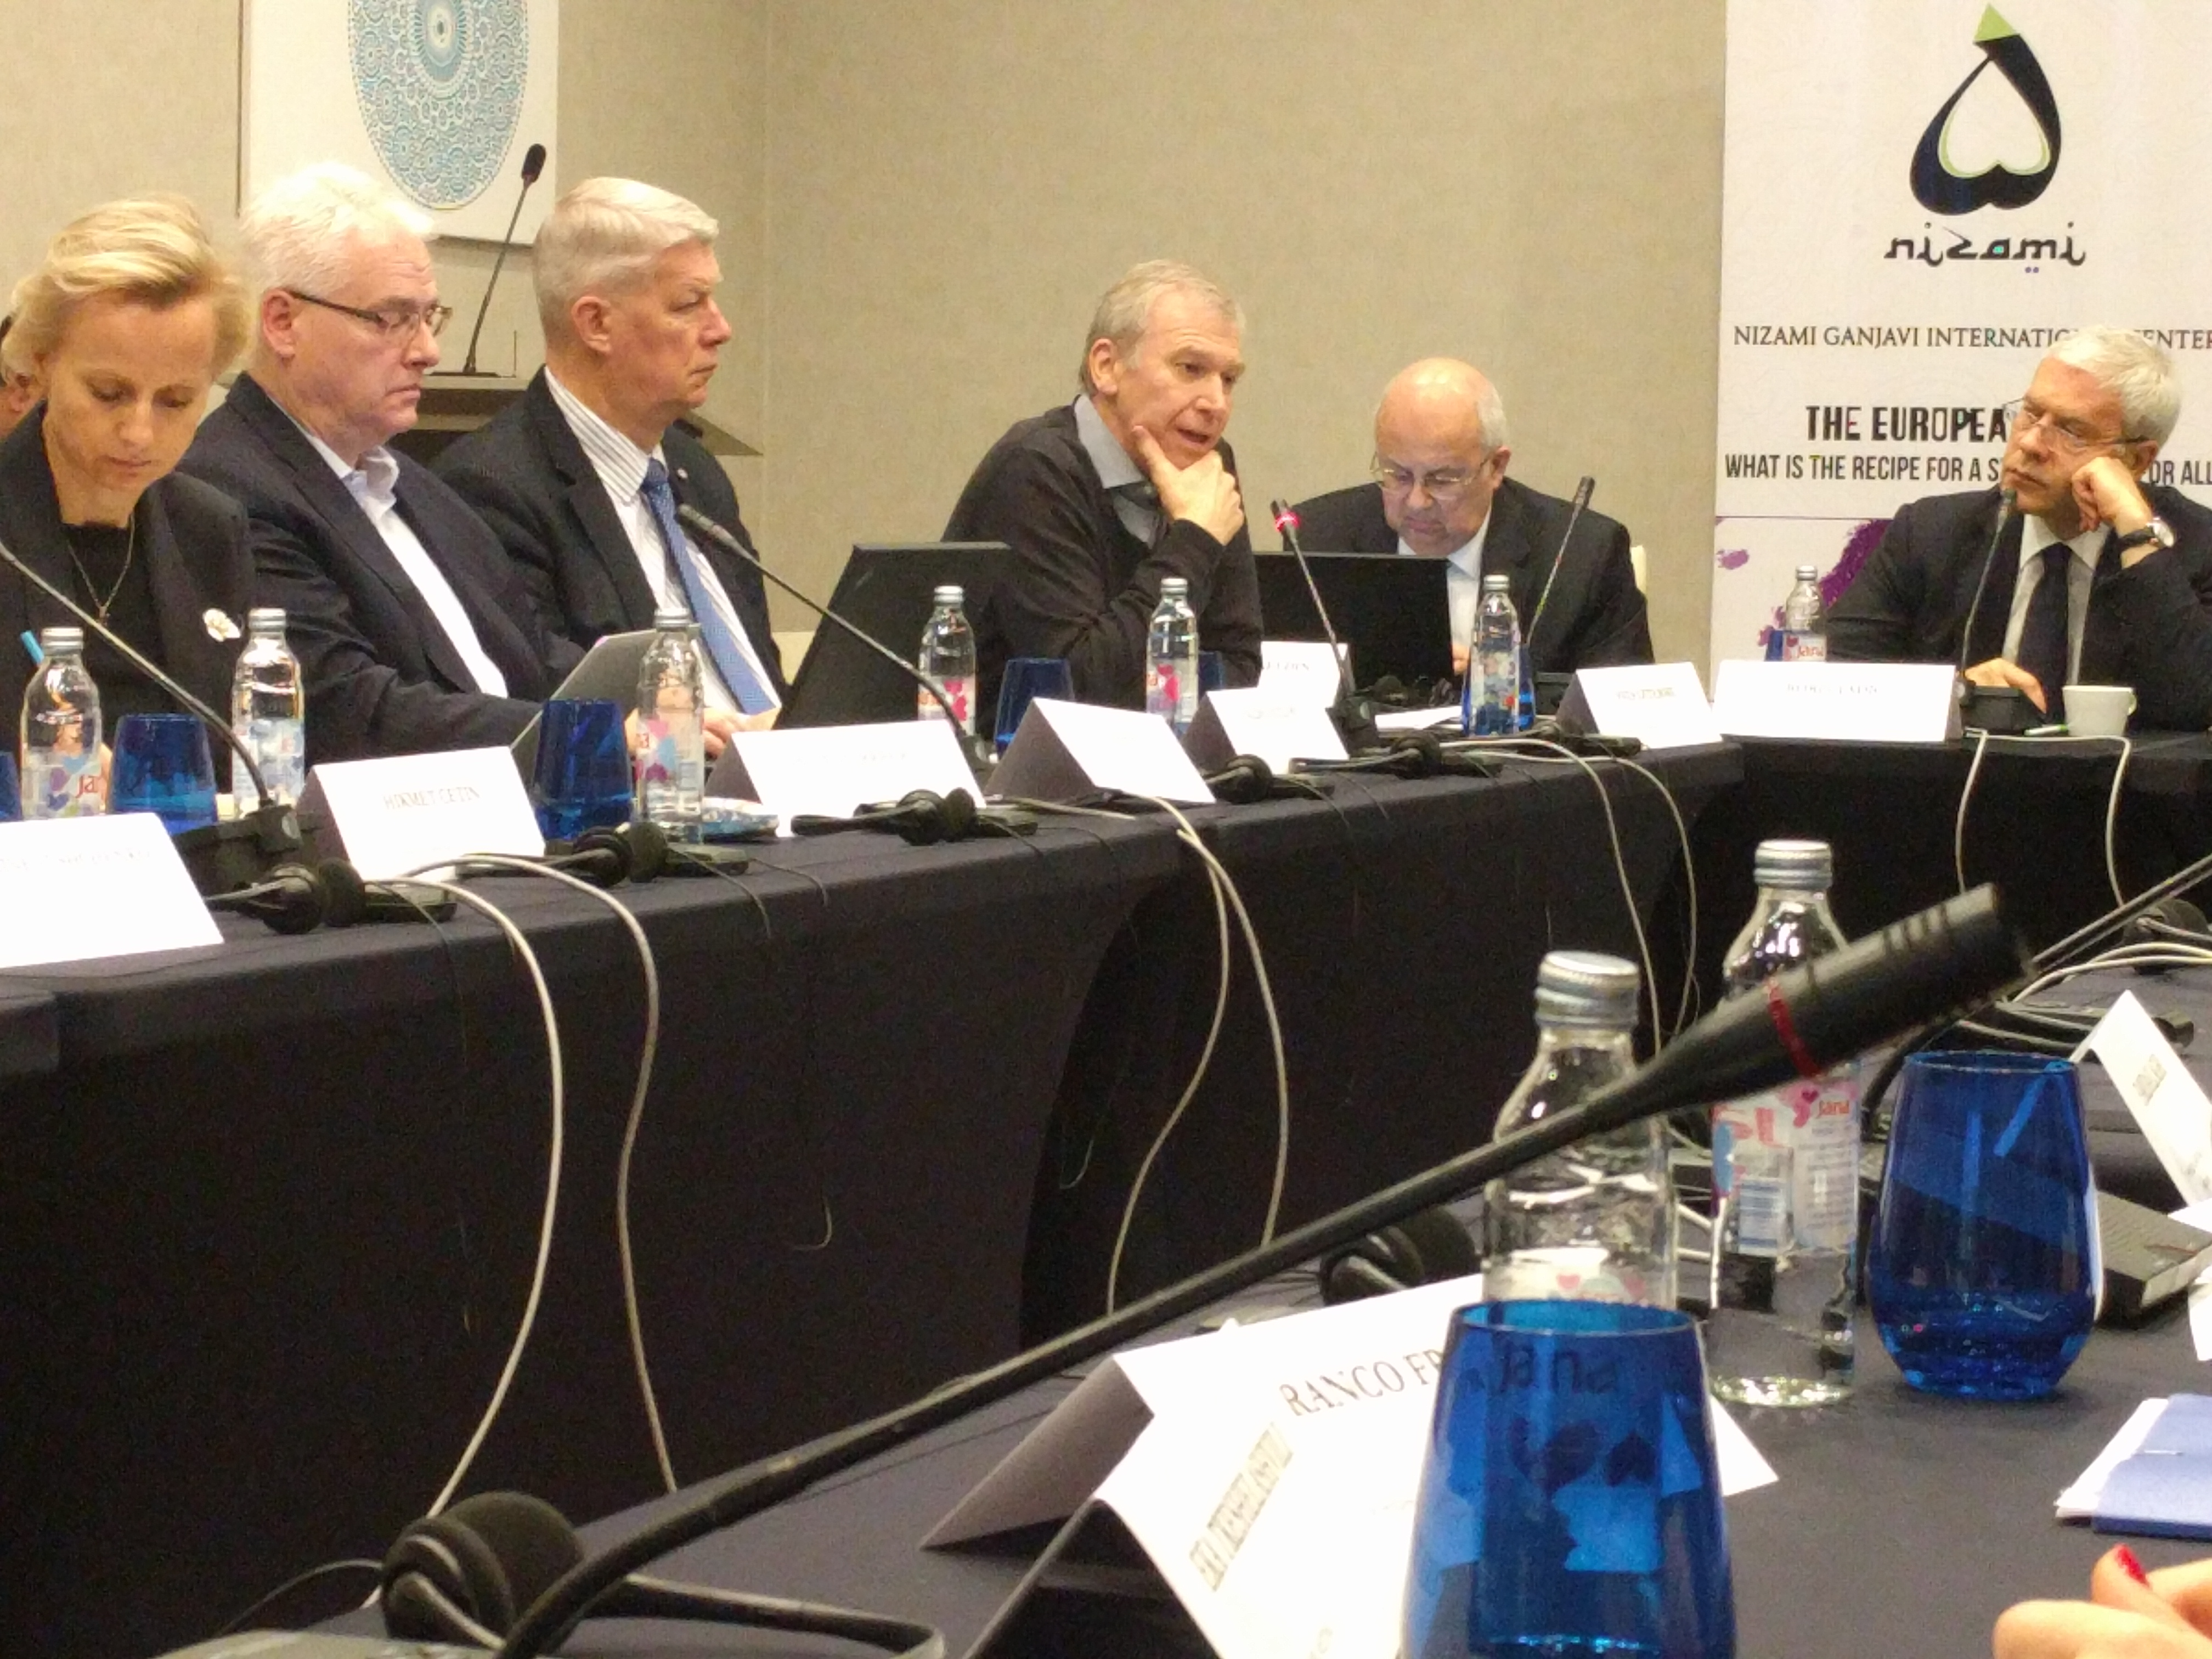 """International IDEA's Secretary-General speaks at the IX High Level Meeting on """"The European Peace: What is Recipe for a Strong Union for All?"""" in Sarajevo"""